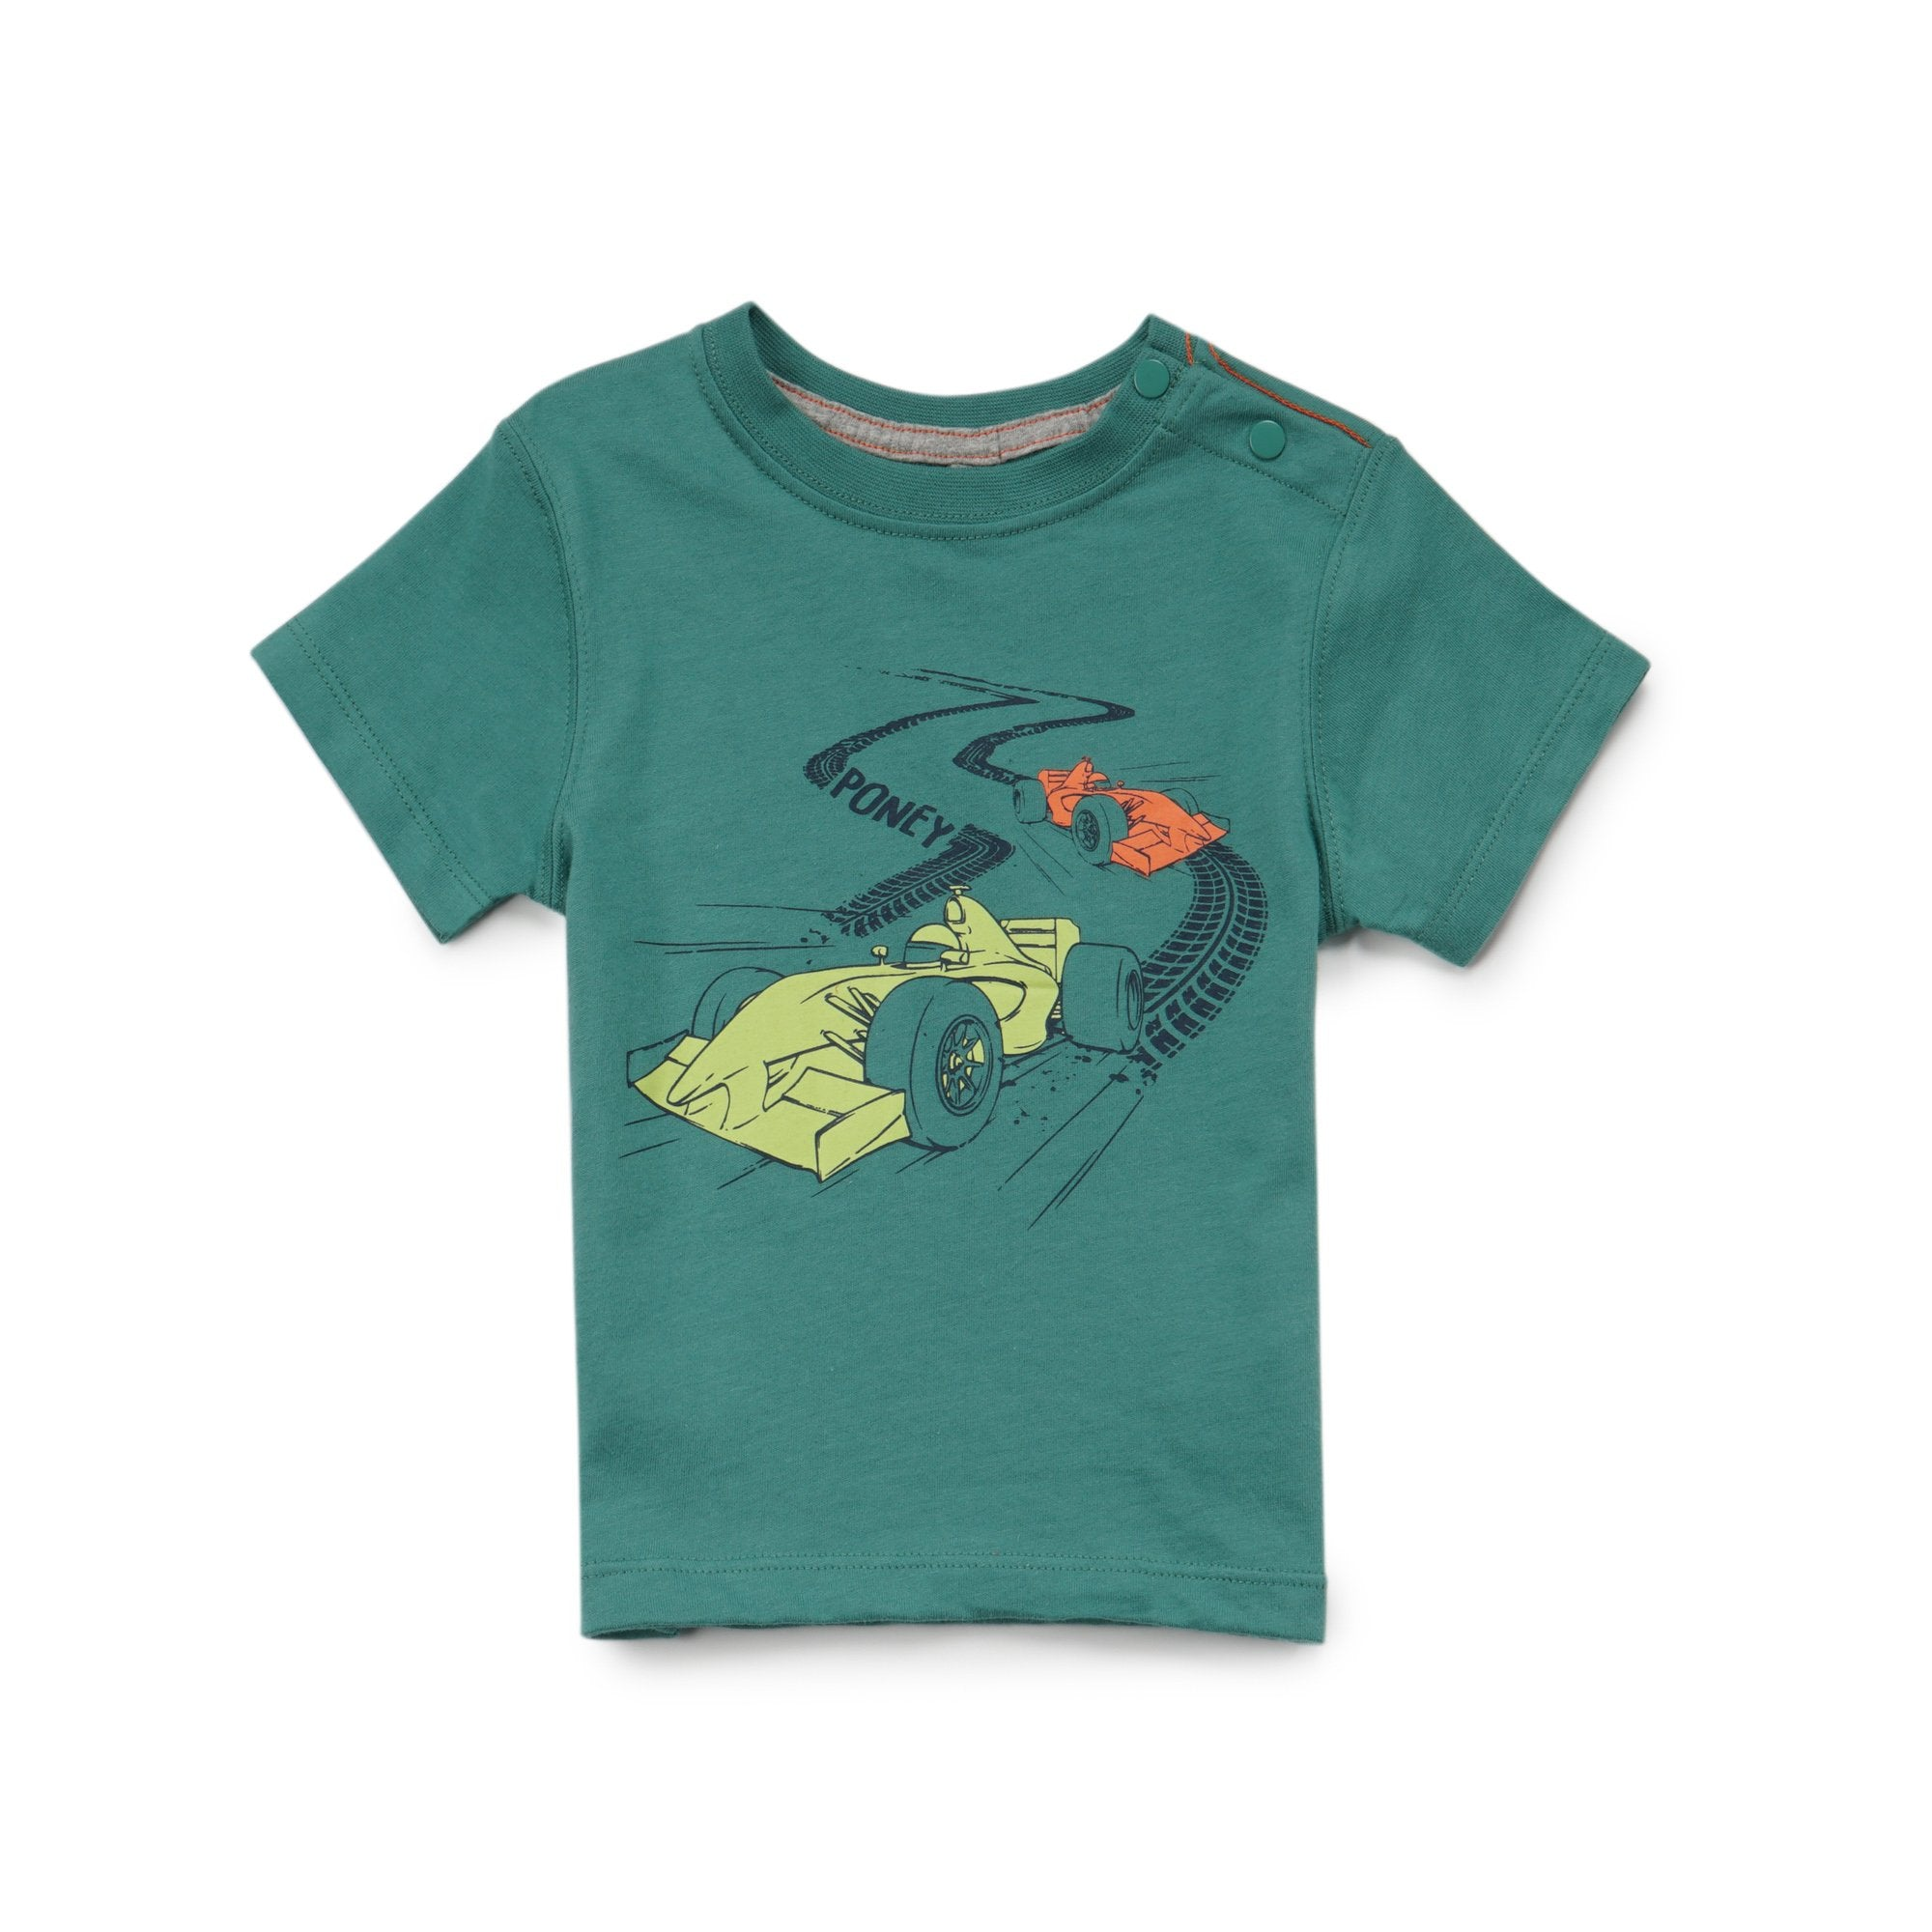 Poney Boys ShortSleeve Tee 8347 (6mths-12yrs)